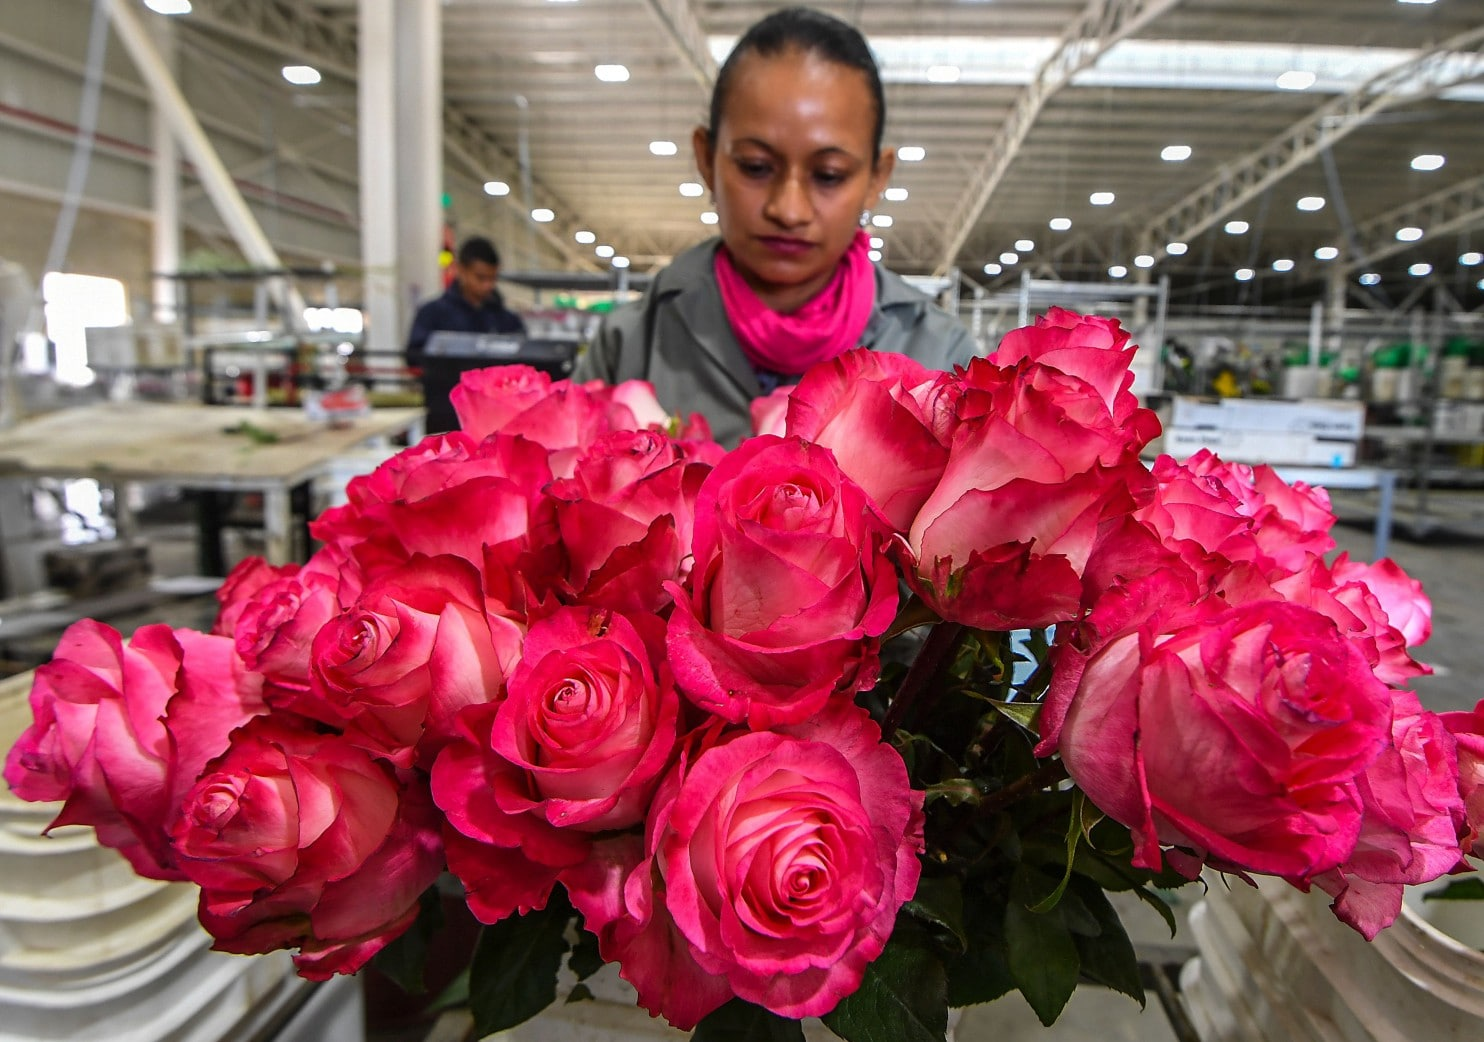 You can give Colombian flowers to your sweetheart guilt-free